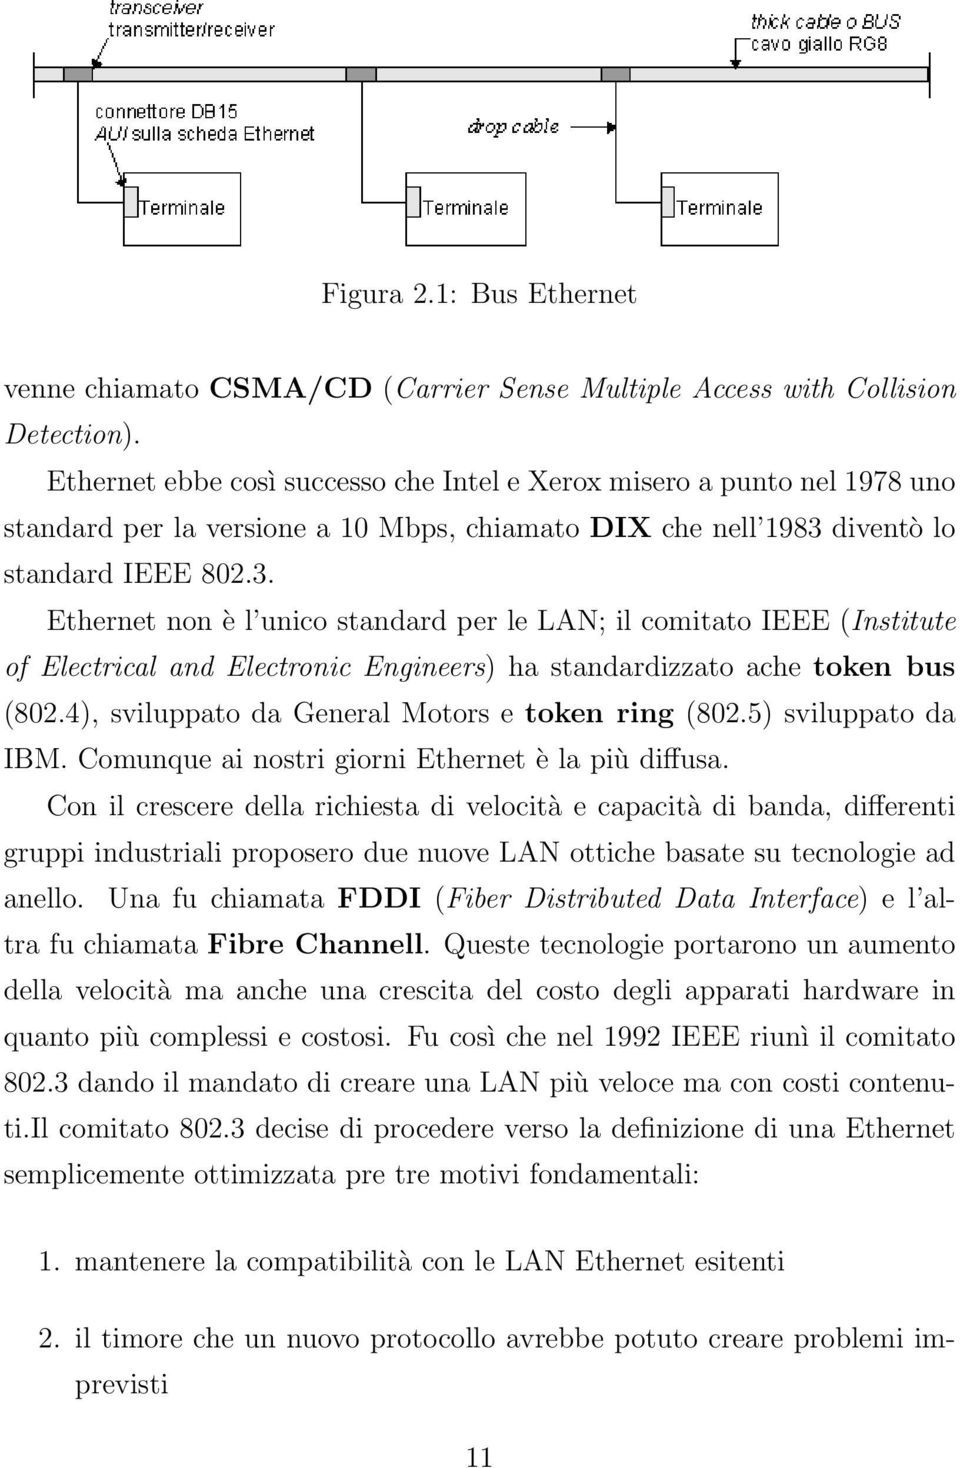 diventò lo standard IEEE 802.3. Ethernet non è l unico standard per le LAN; il comitato IEEE (Institute of Electrical and Electronic Engineers) ha standardizzato ache token bus (802.